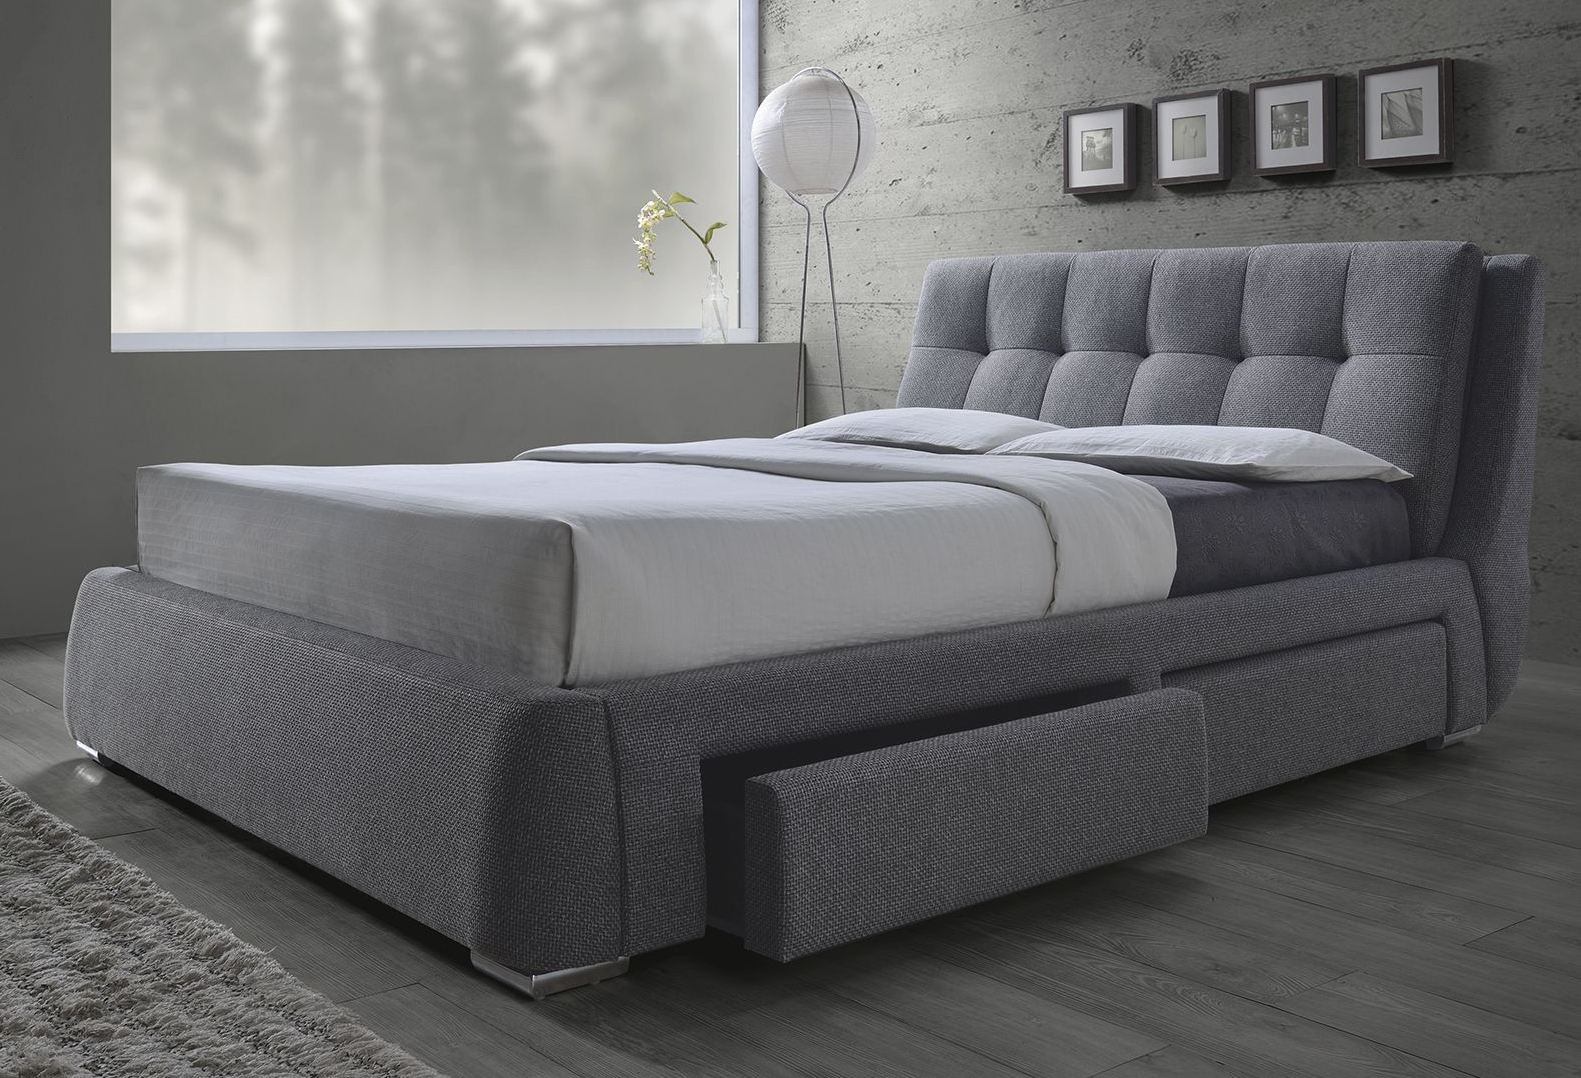 Fenbrook Gray Queen Platform Storage Bed From Coaster